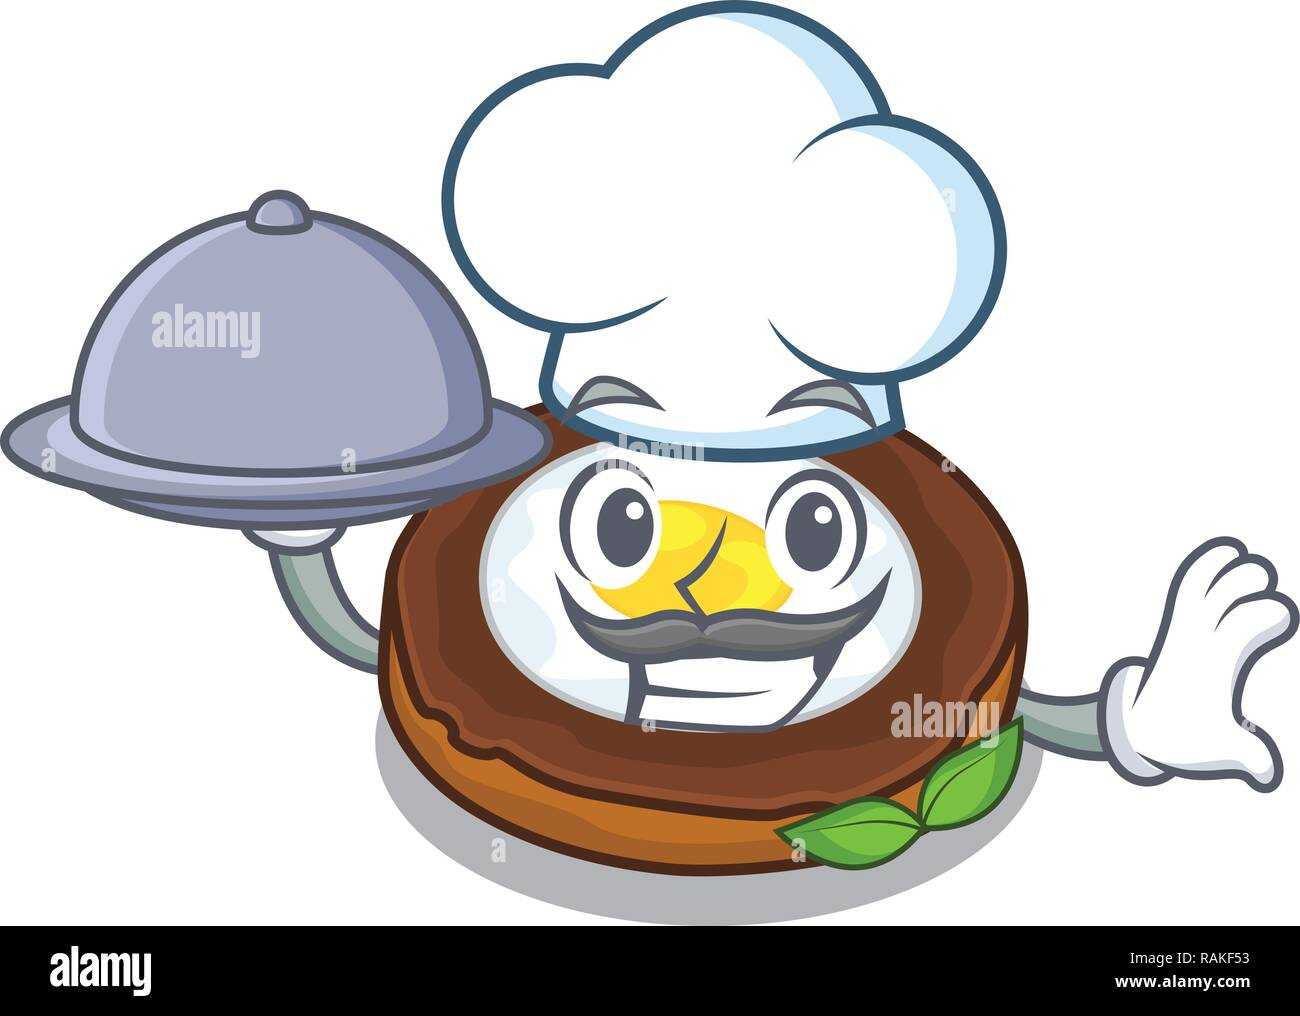 Chef with food egg scotch on character wood boards - Stock Vector